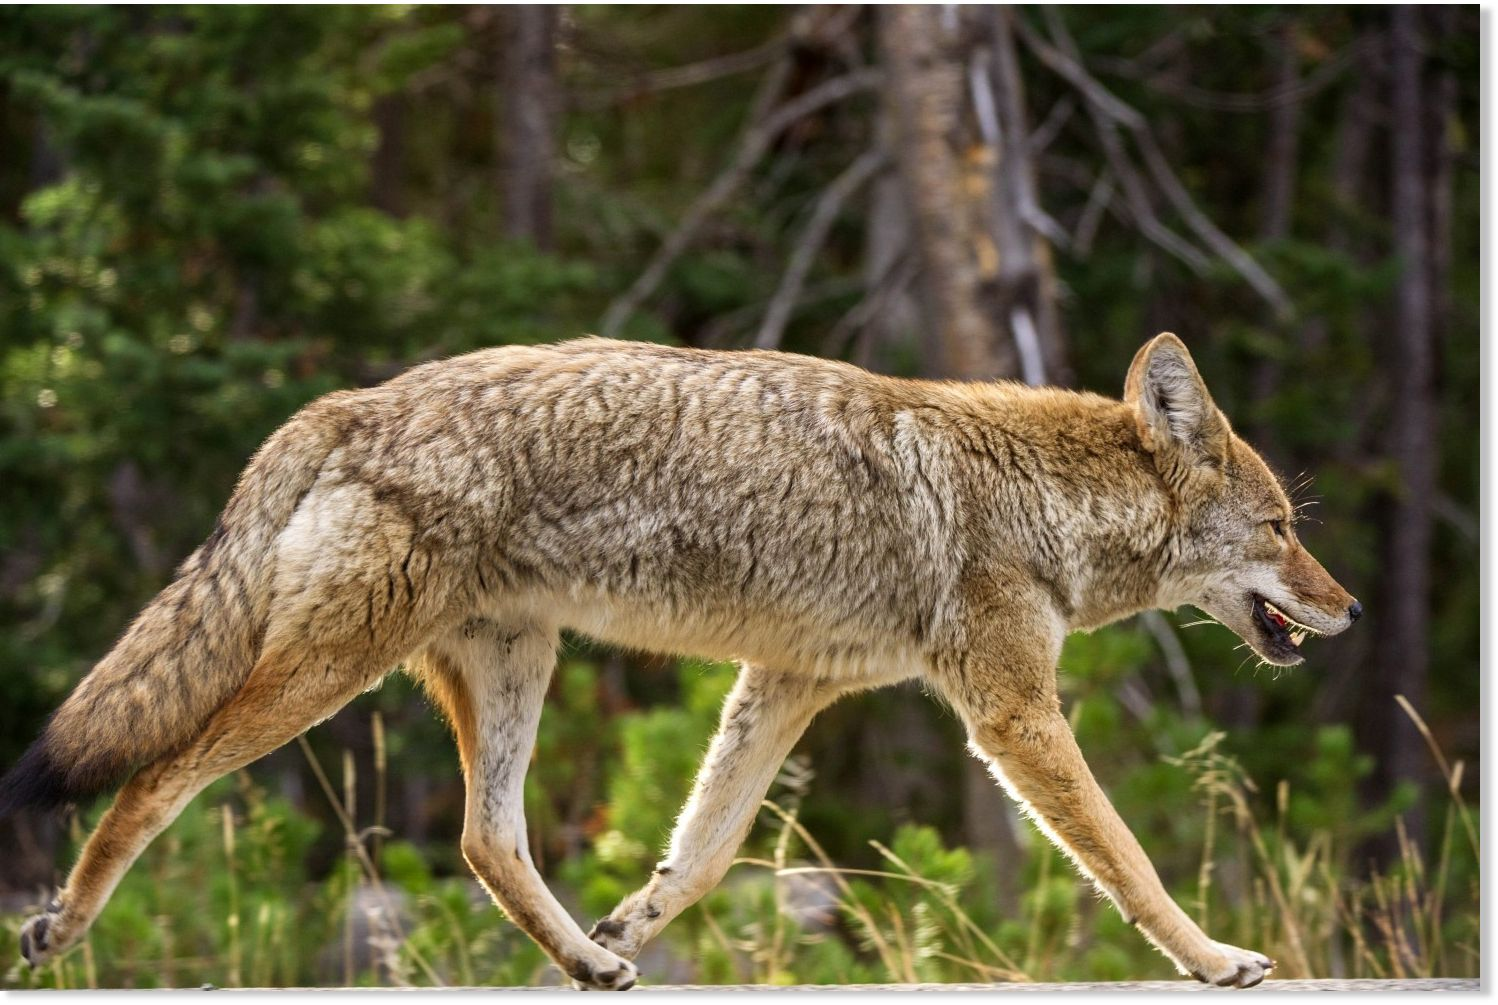 Out of control: USDA's Wildlife Services killed 4 million ...